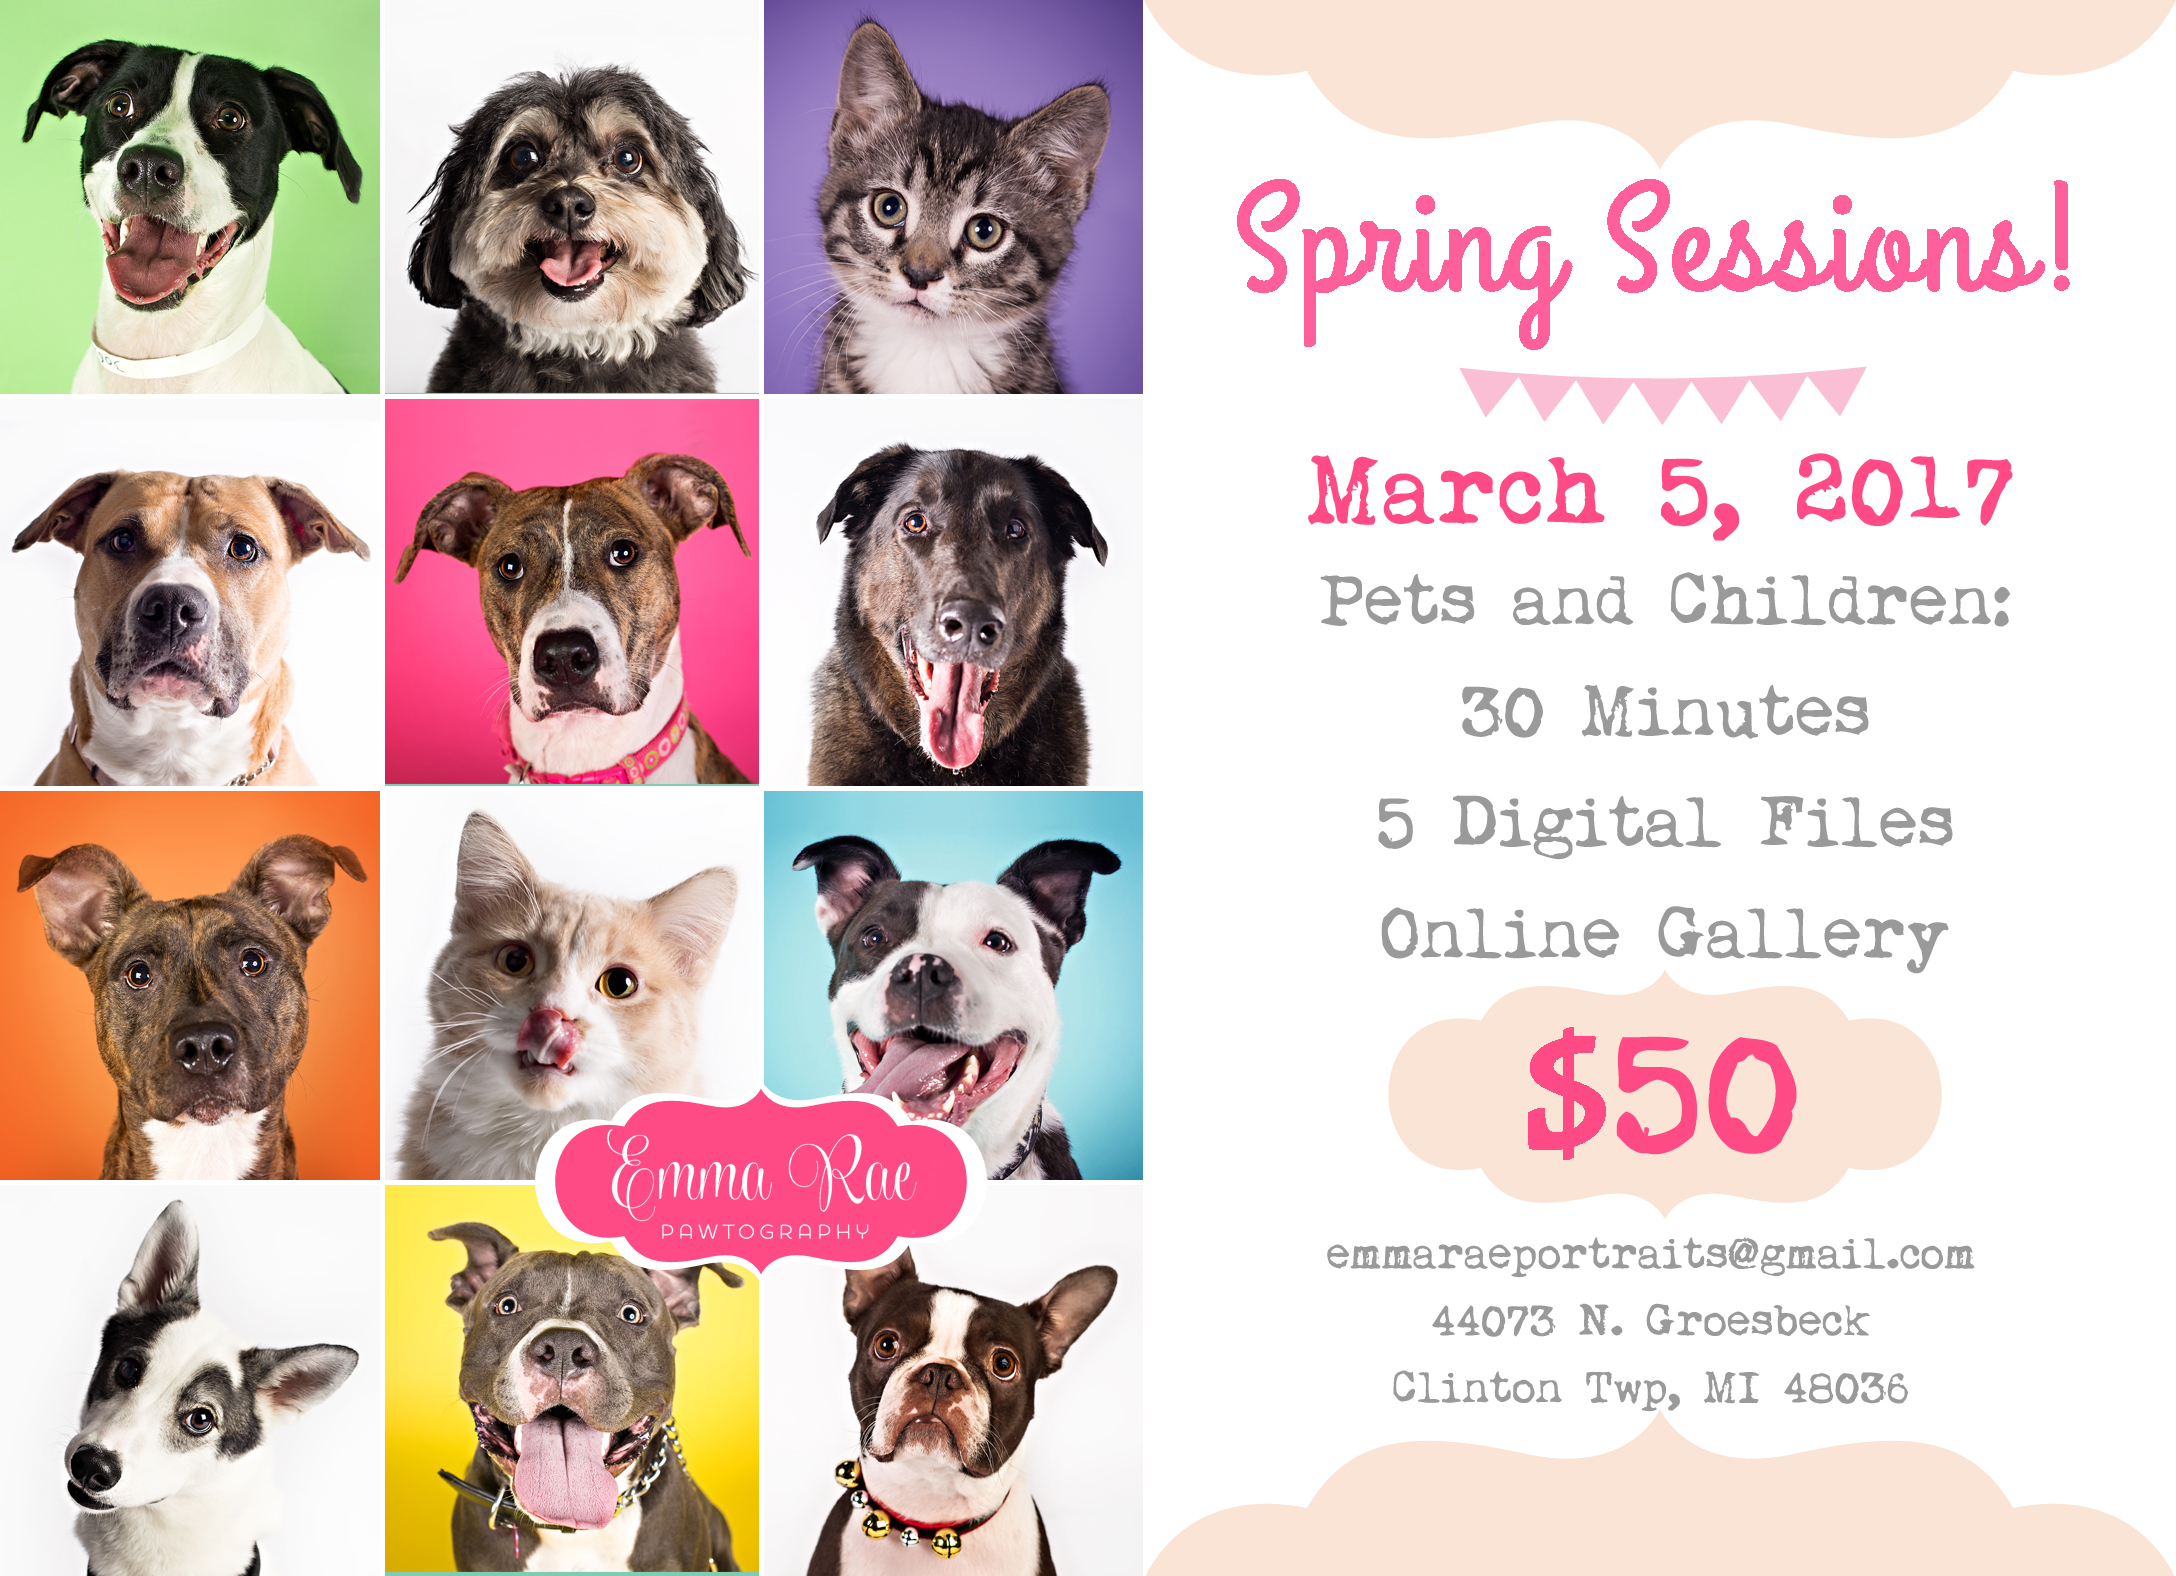 Now booking spring mini pet portrait sessions to benefit A ReJoyceful Animal Rescue! Only a couple time spots left, so book now if you want in! I will have a guest vendor with me: Pawsitively Loved. She sells handmade bandanas, coats, blankets, cat toys, and more, and she, too, will be donating a portion of the proceeds to the rescue!  I will be announcing another spring portrait fundraiser to benefit Tigerlily Cat Rescue in the coming weeks ~ this second event will be open to pets only.